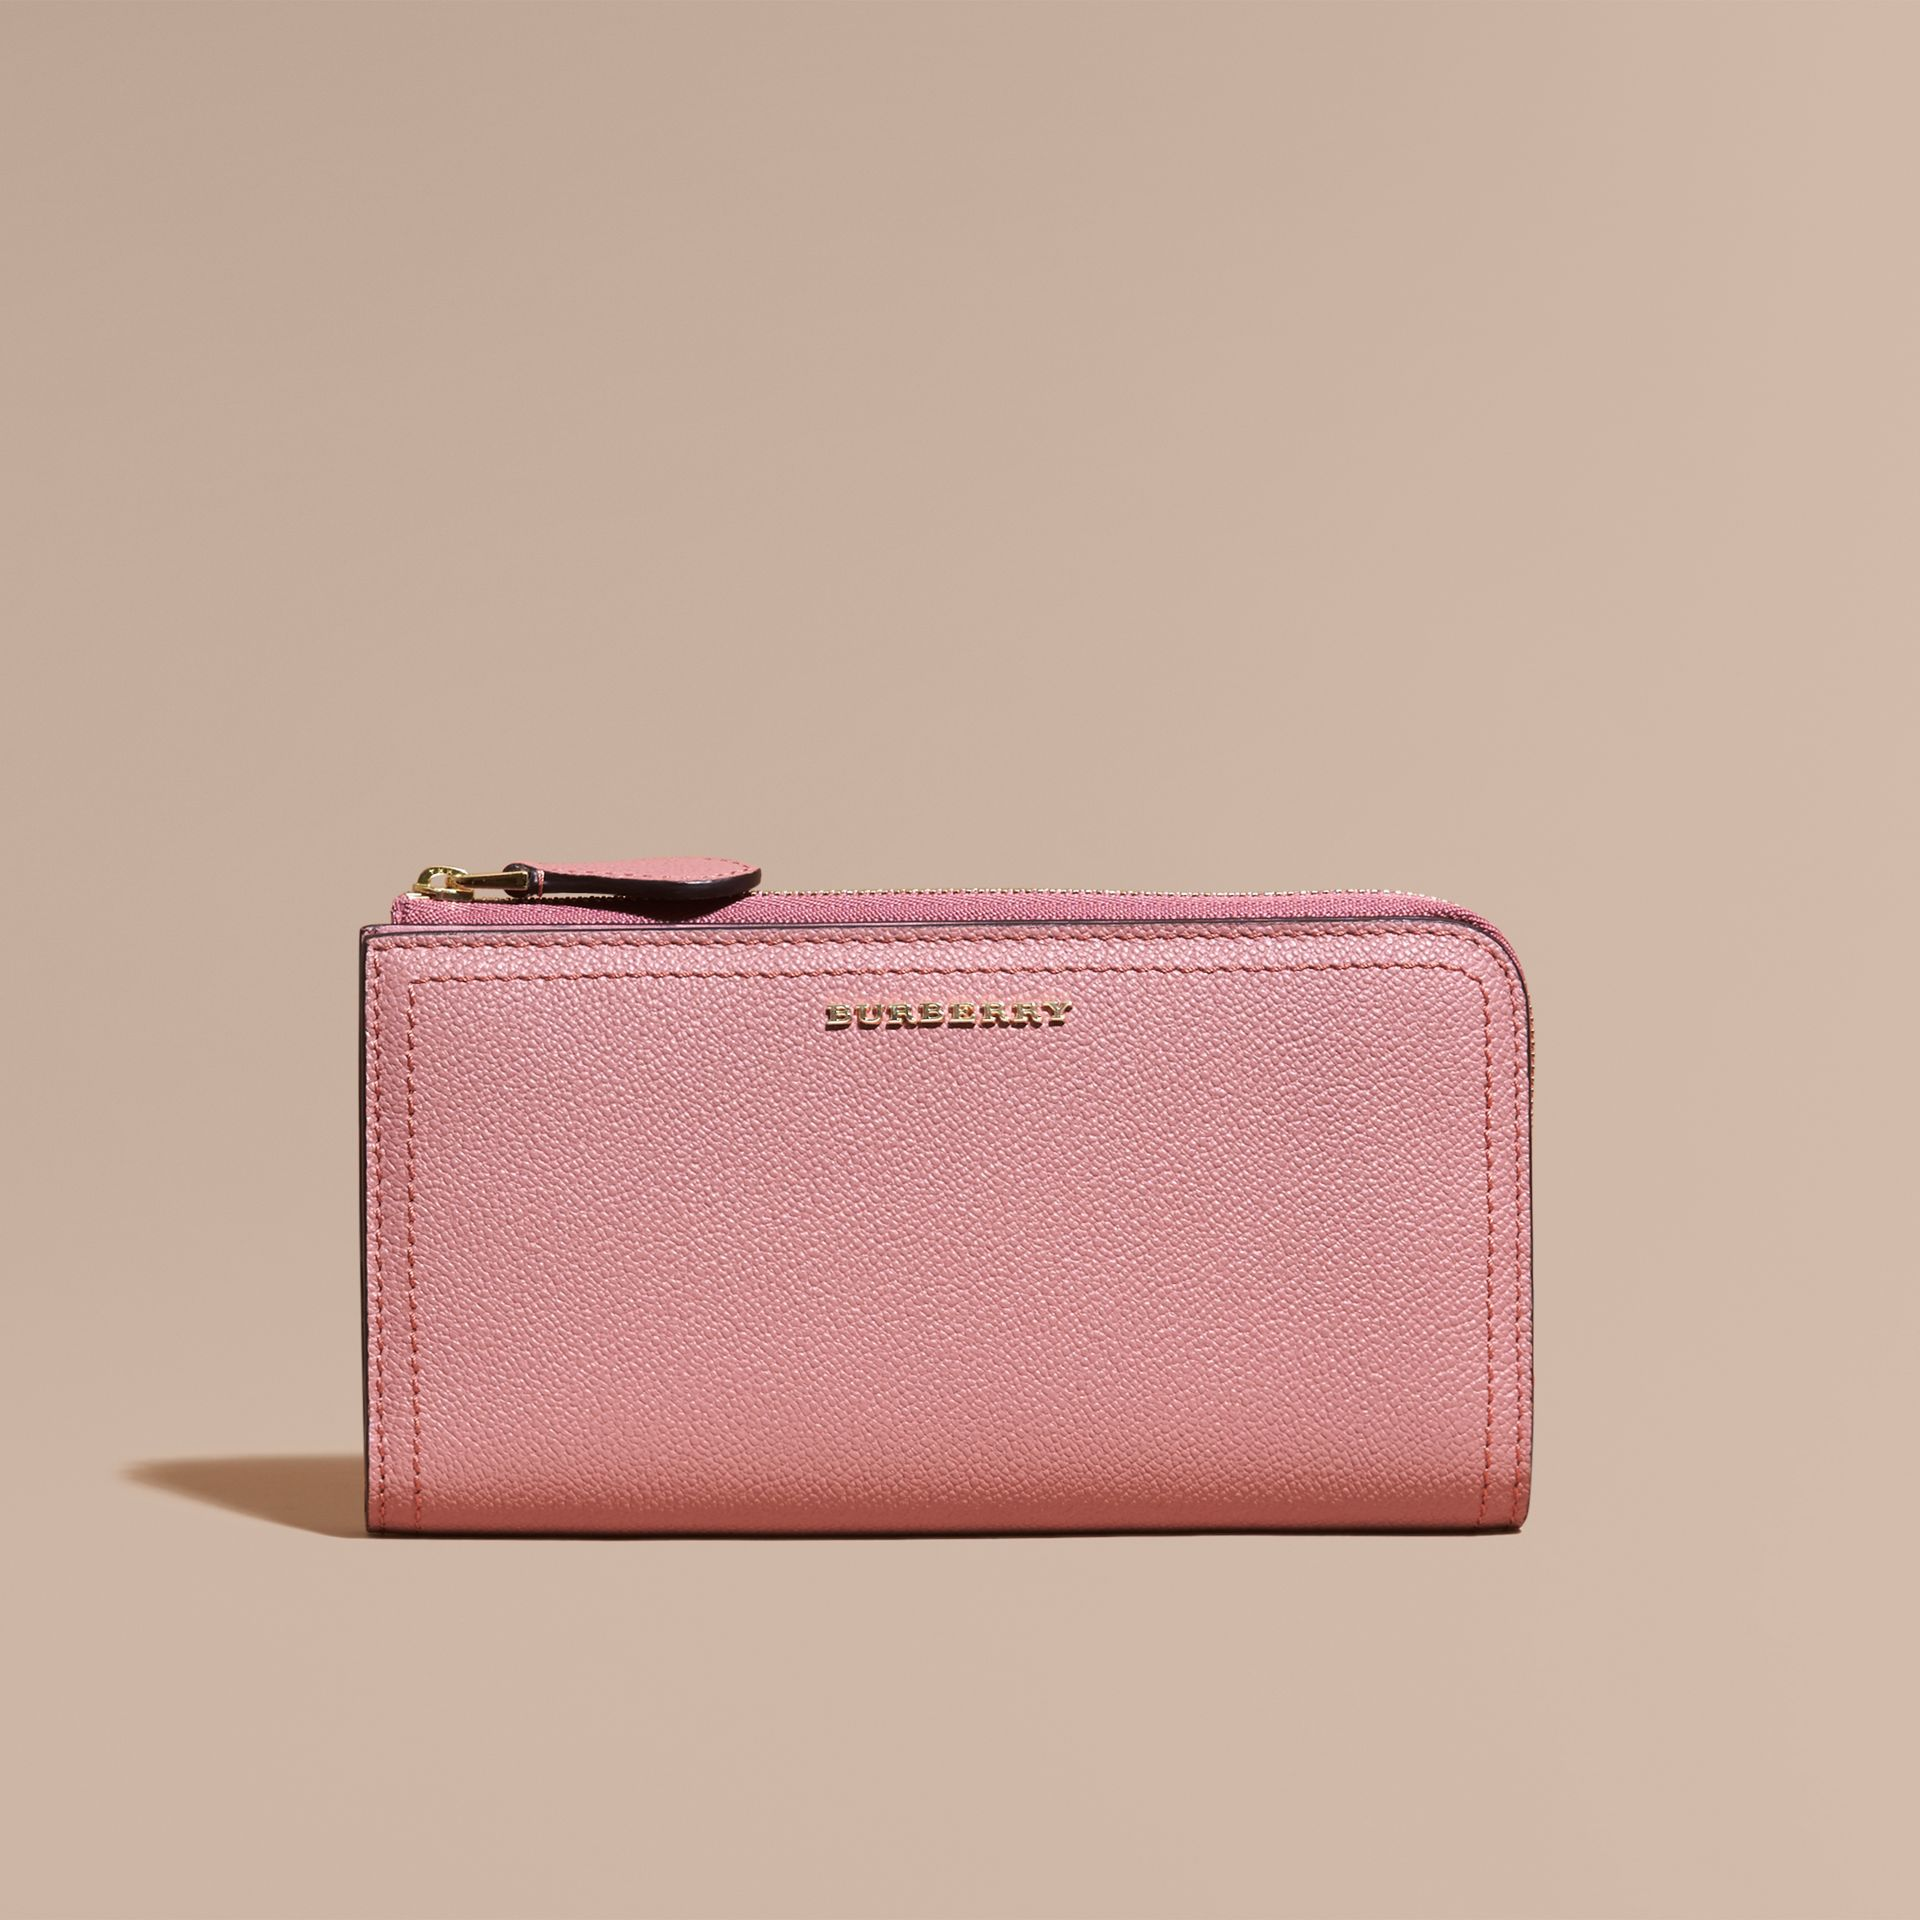 Dusty pink Grainy Leather Ziparound Wallet Dusty Pink - gallery image 3